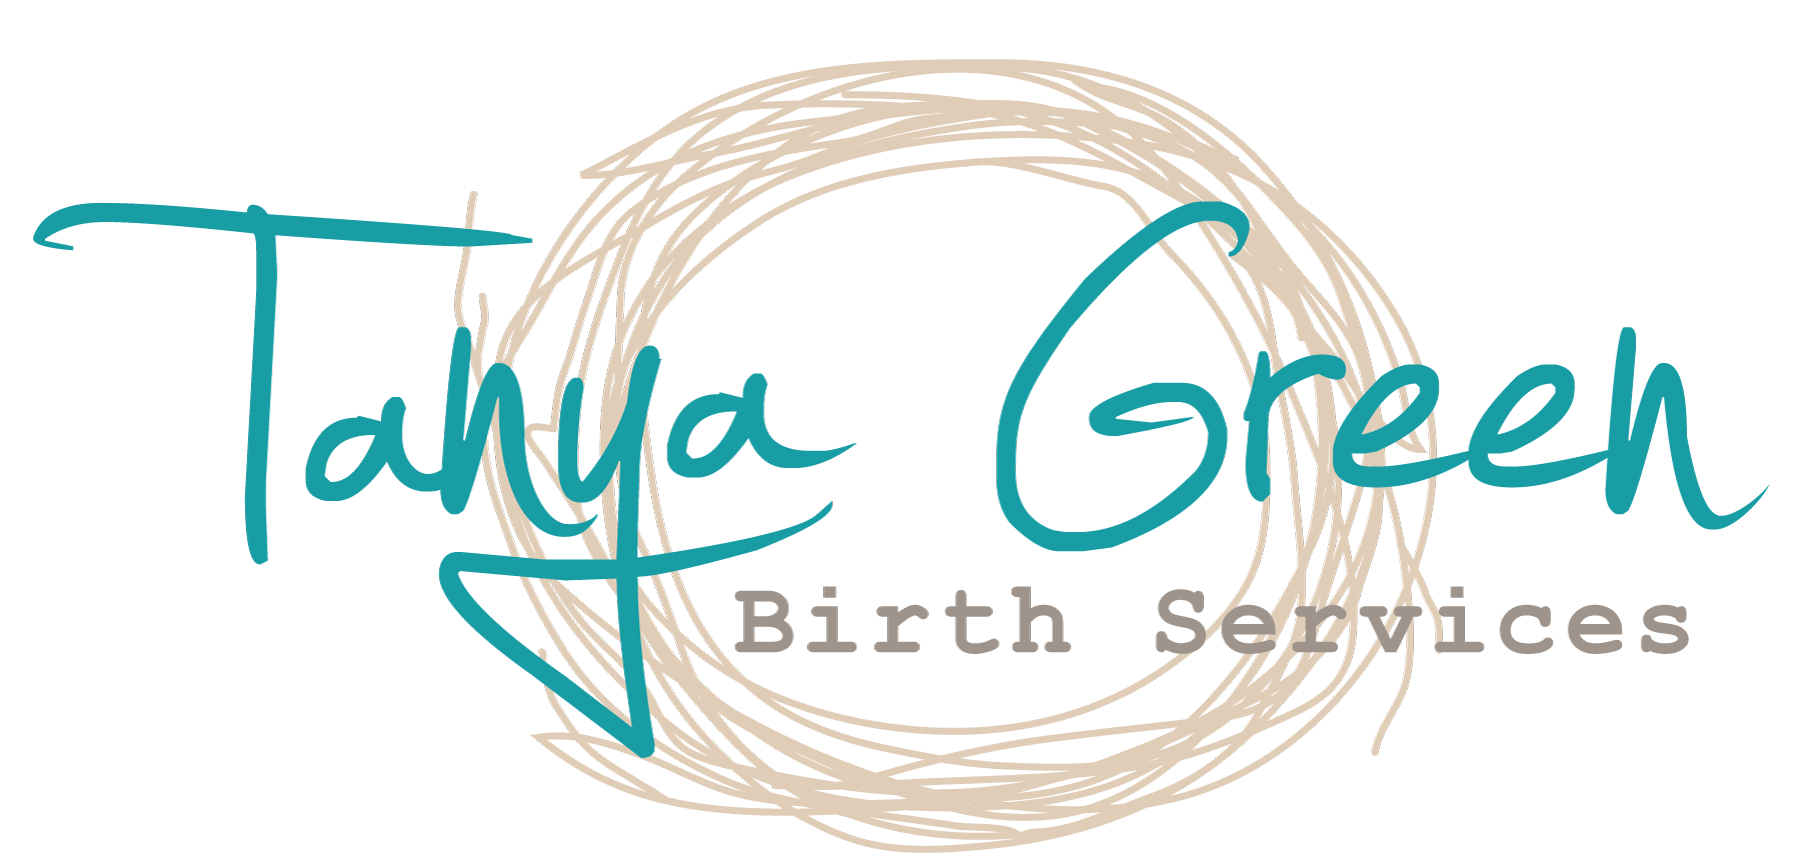 anya Green Birth Services